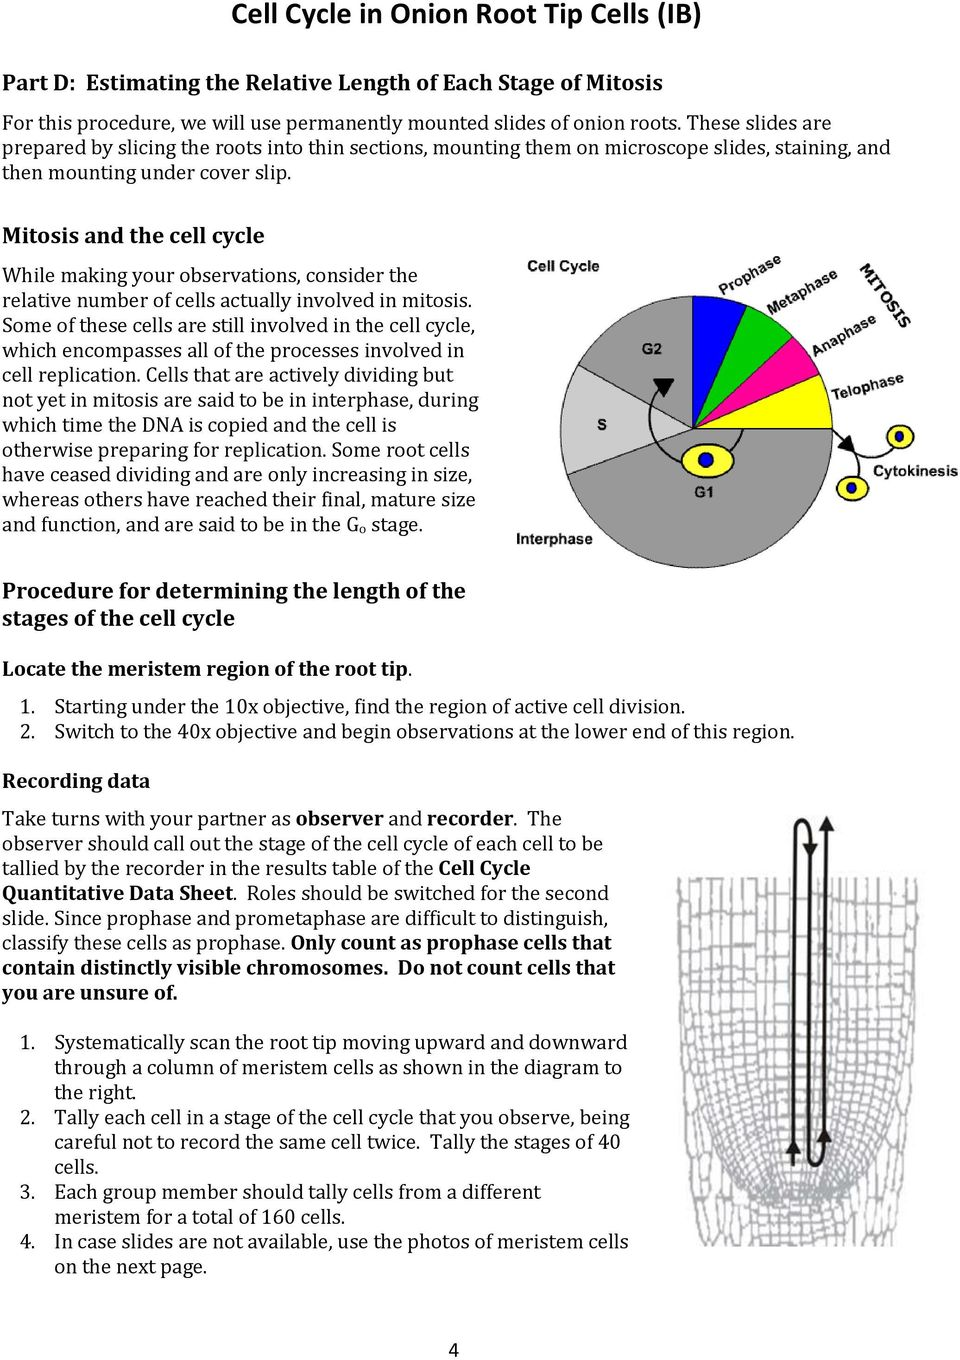 onion root tip diagram ground fault breaker wiring cell cycle in cells ib pdf mitosis and the while making your observations consider relative number of 5